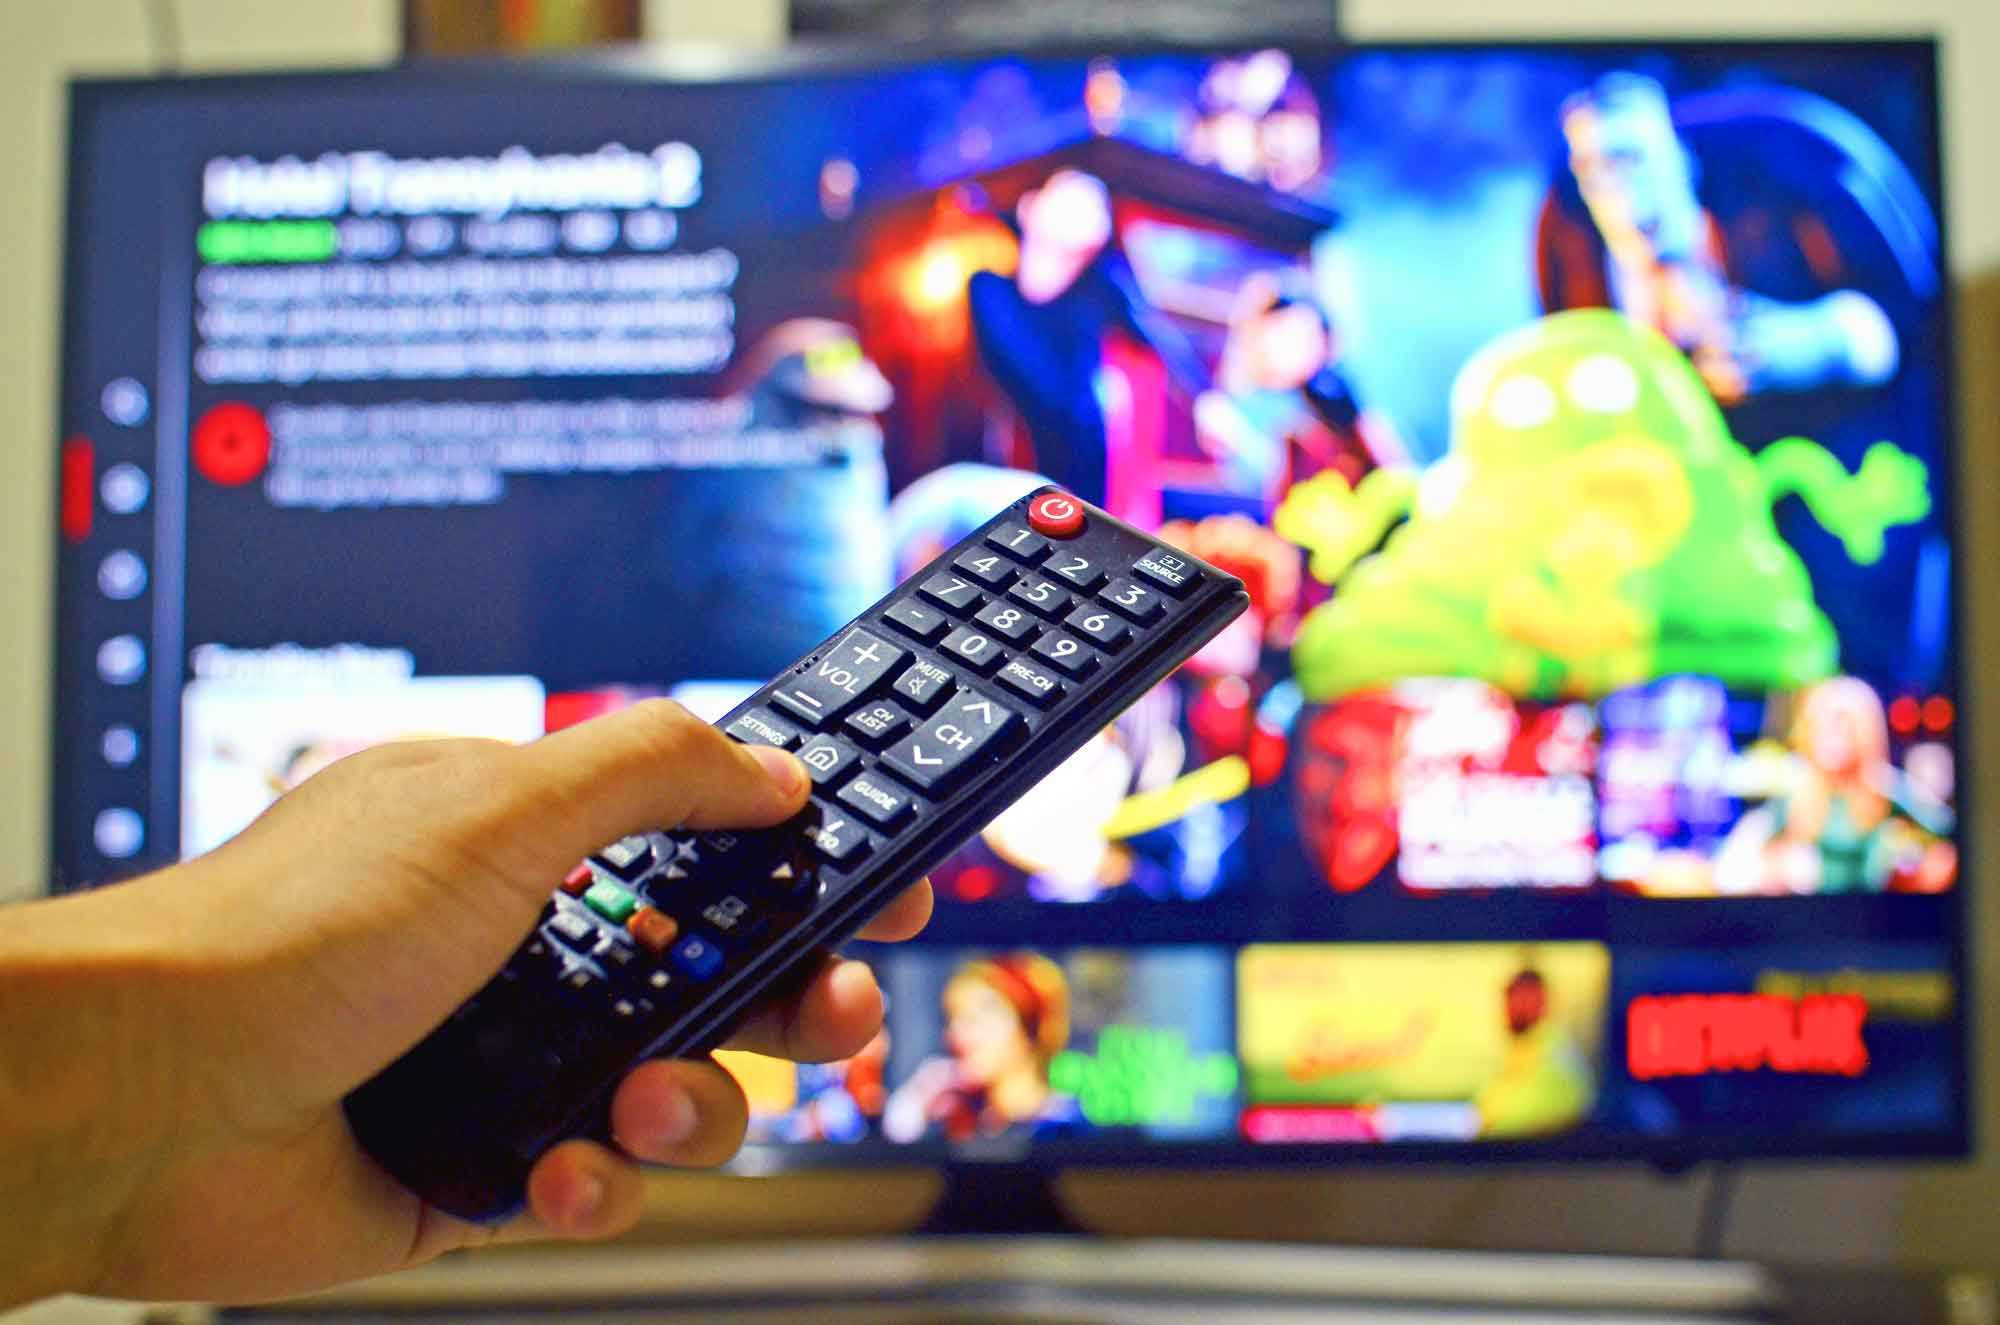 78% Of US Households Now Have A Subscription To One Or More Video Streaming Services